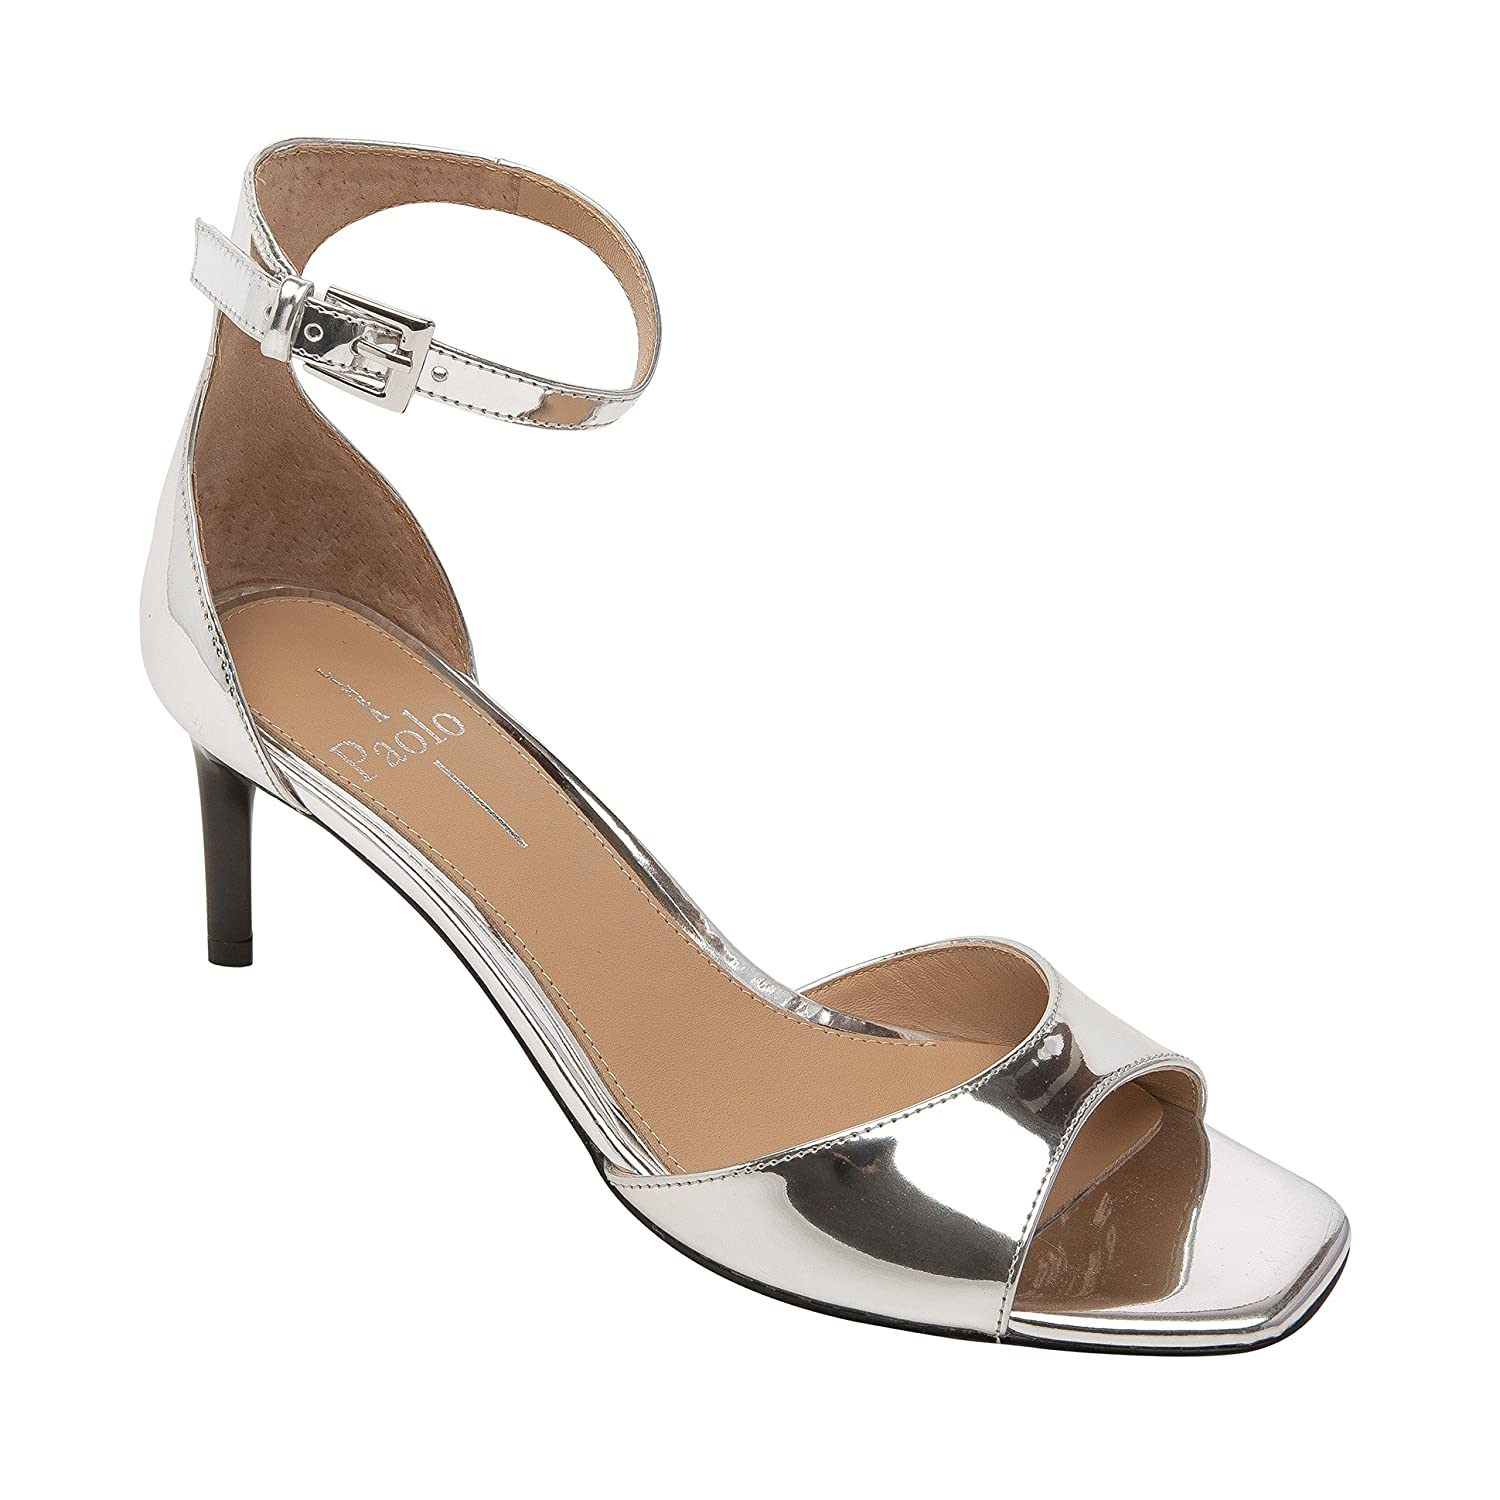 Linea Paolo Helen | Women's Mid-Height Leather Ankle Strap Sandal B07957PT15 8.5 M US|Silver Leather